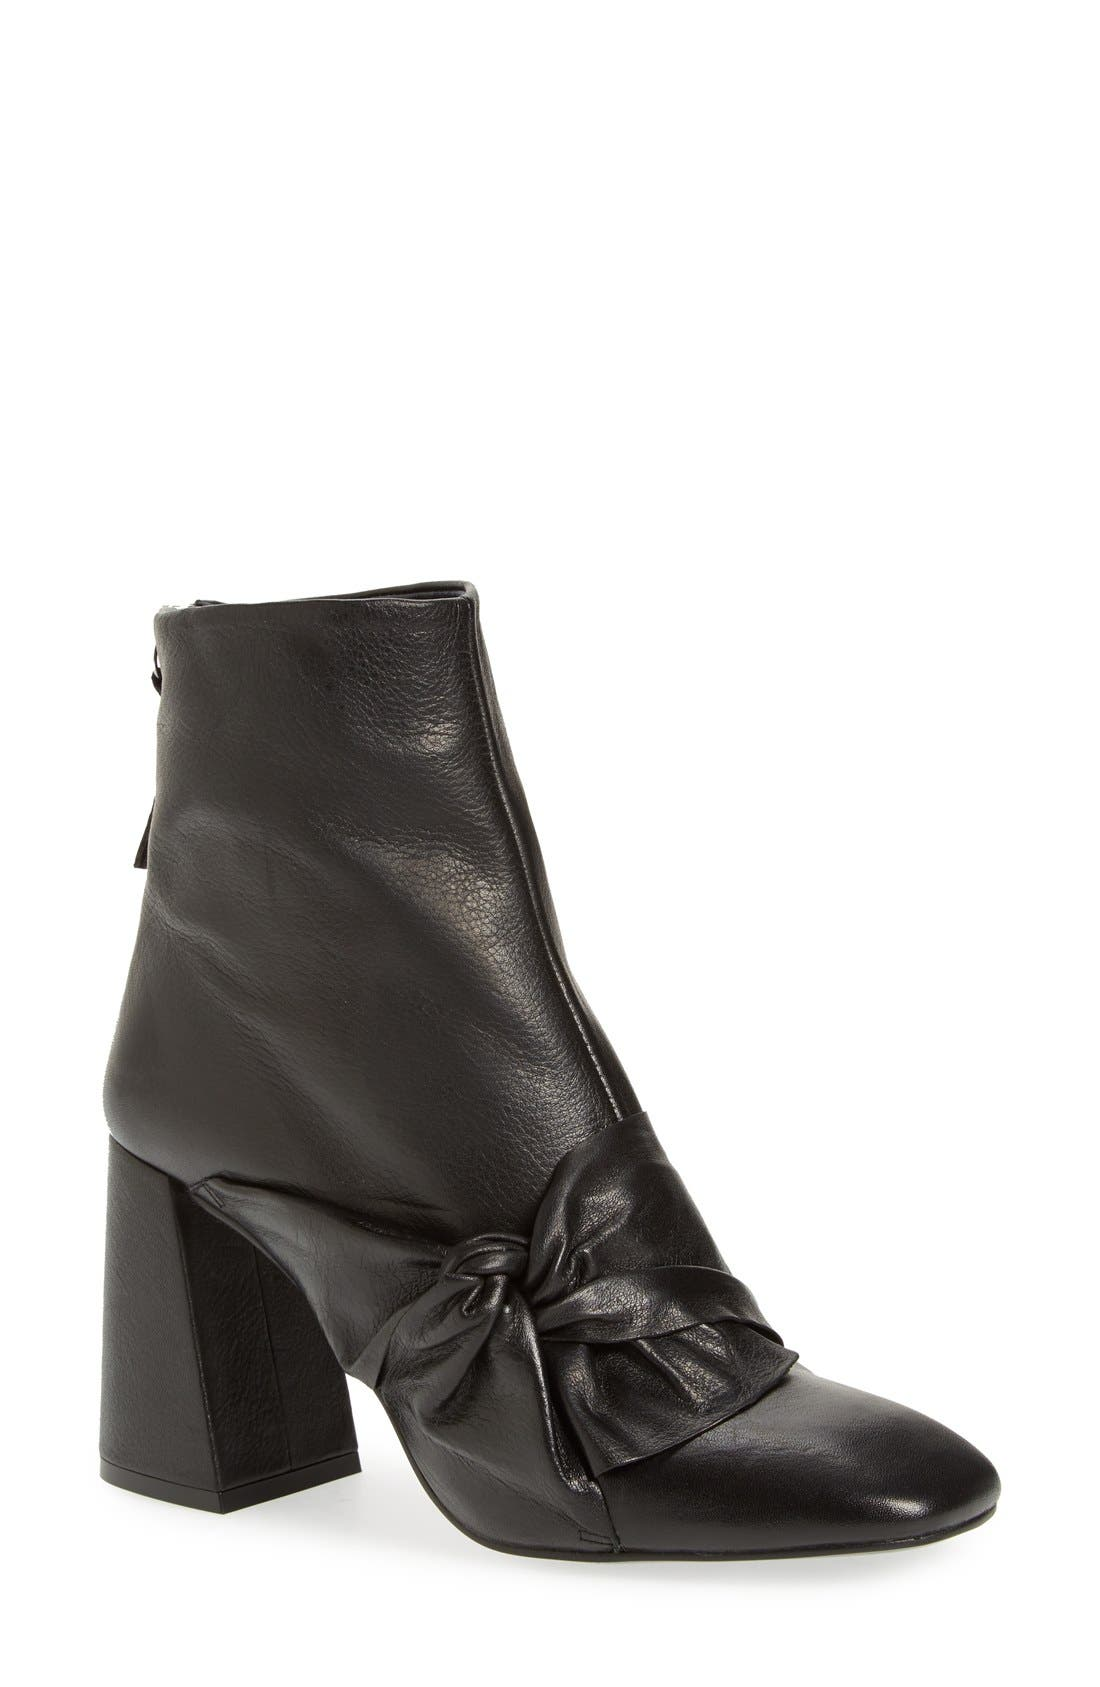 Alternate Image 1 Selected - Topshop 'Bow Monroe' Knotted Bootie (Women)